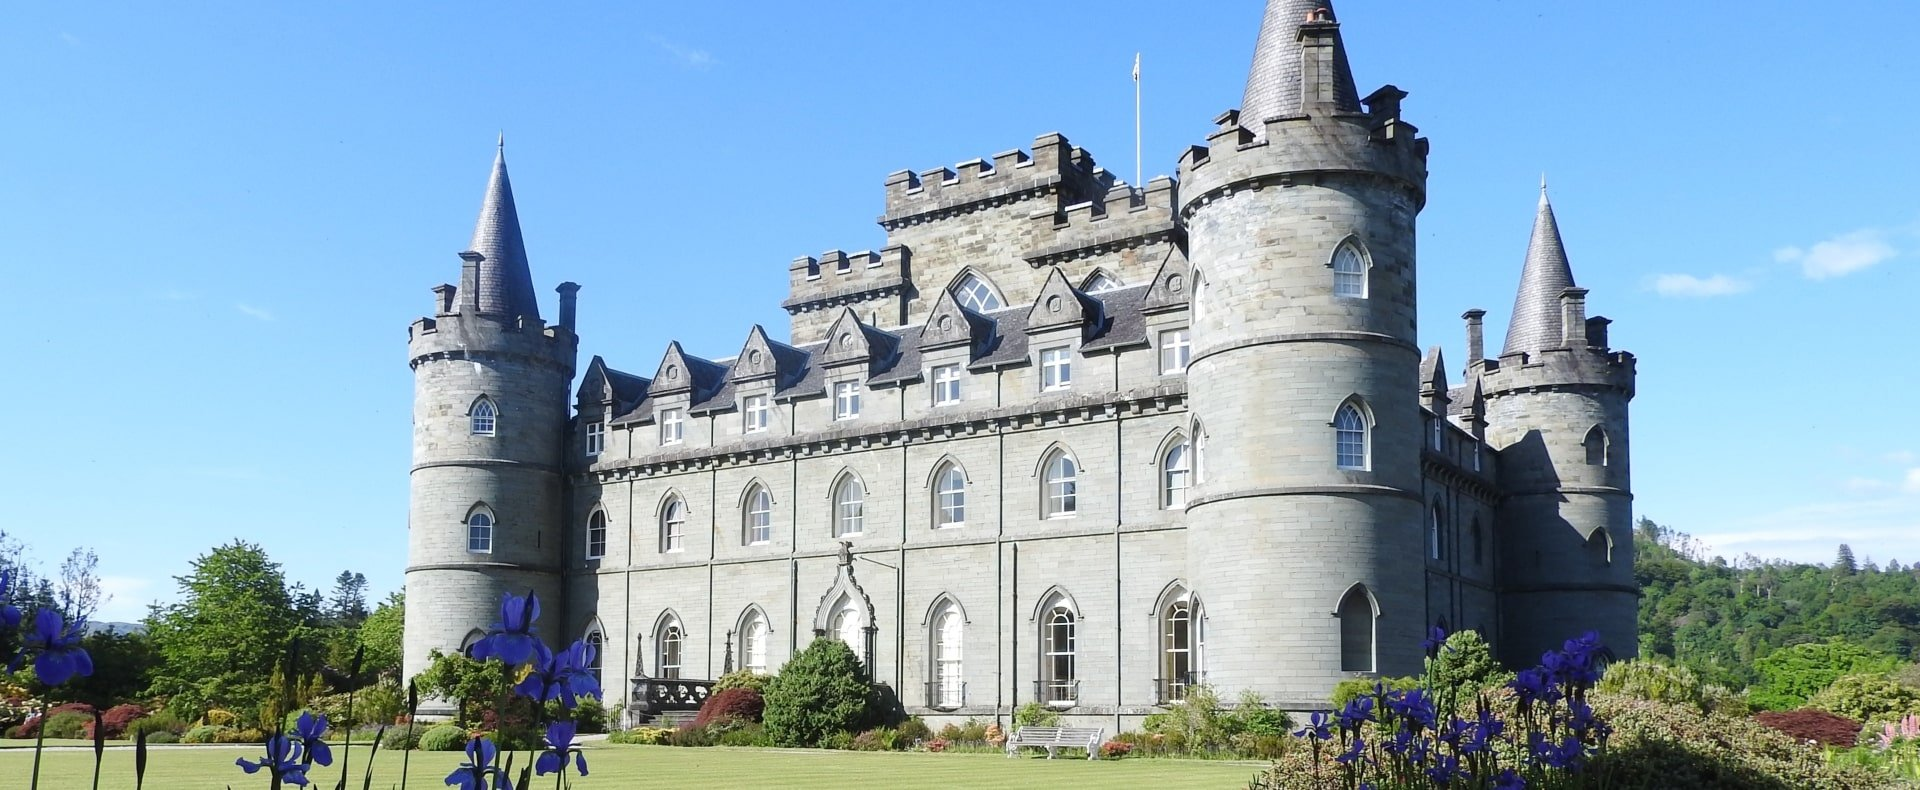 Inveraray Castle Experience Gallery